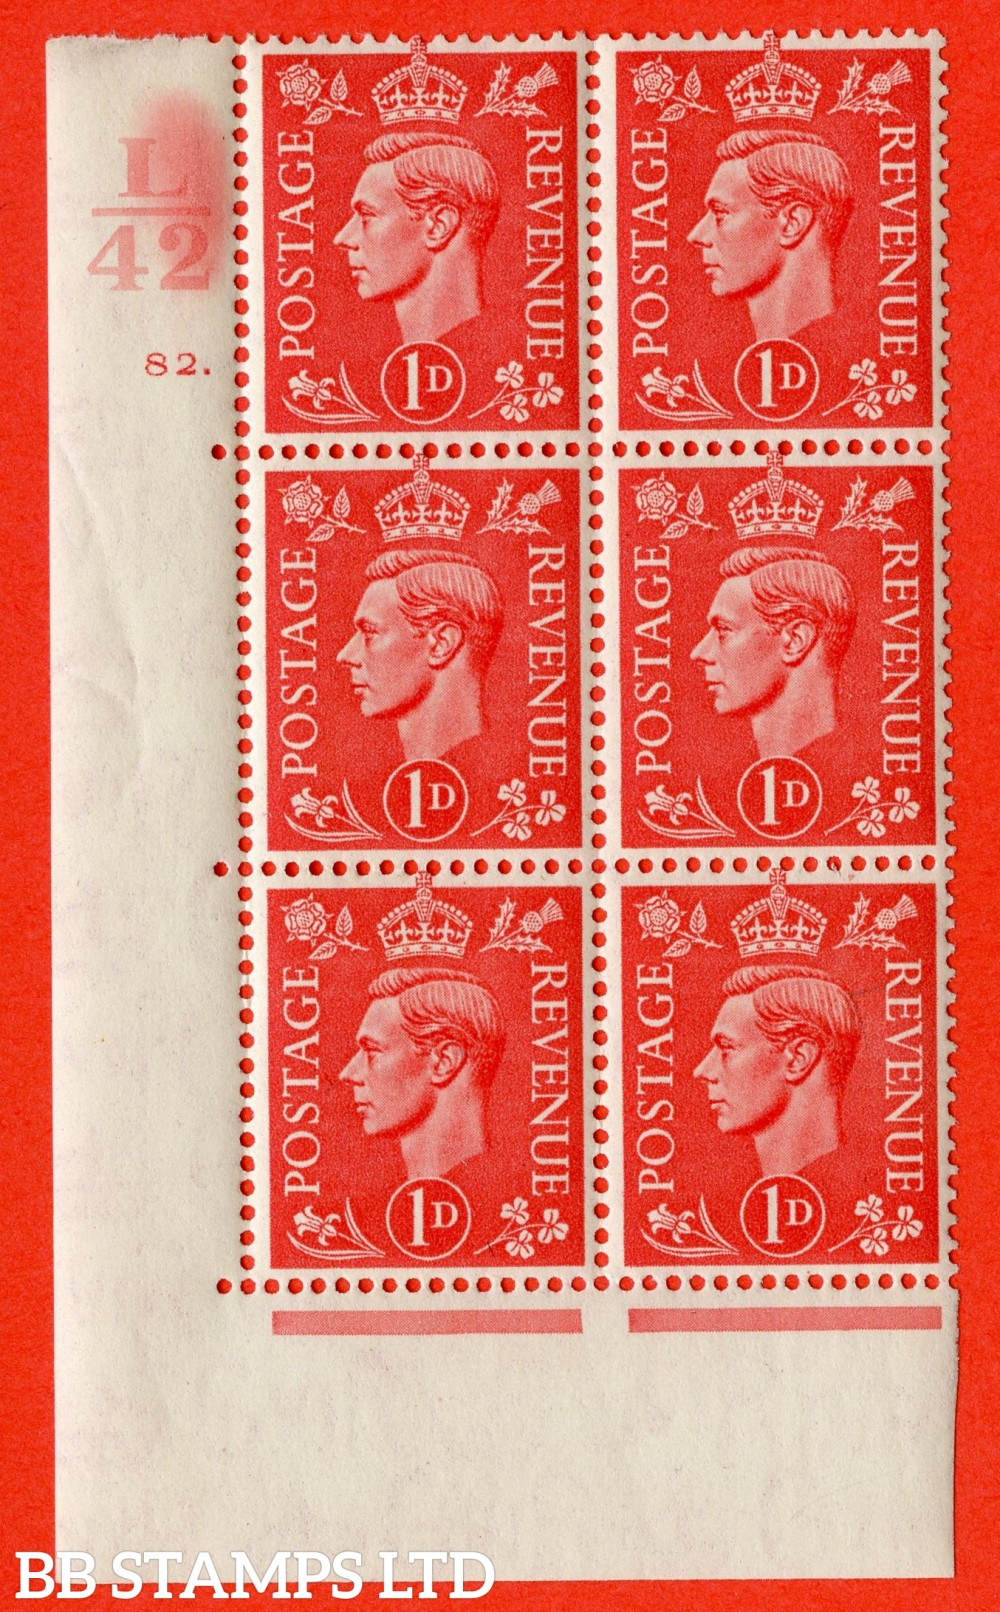 "SG. 486. Q5. 1d Pale scarlet. Asuperb UNMOUNTED MINT "" Control L42 cylinder 82 dot "" control block of 6 with perf type 5 E/I."